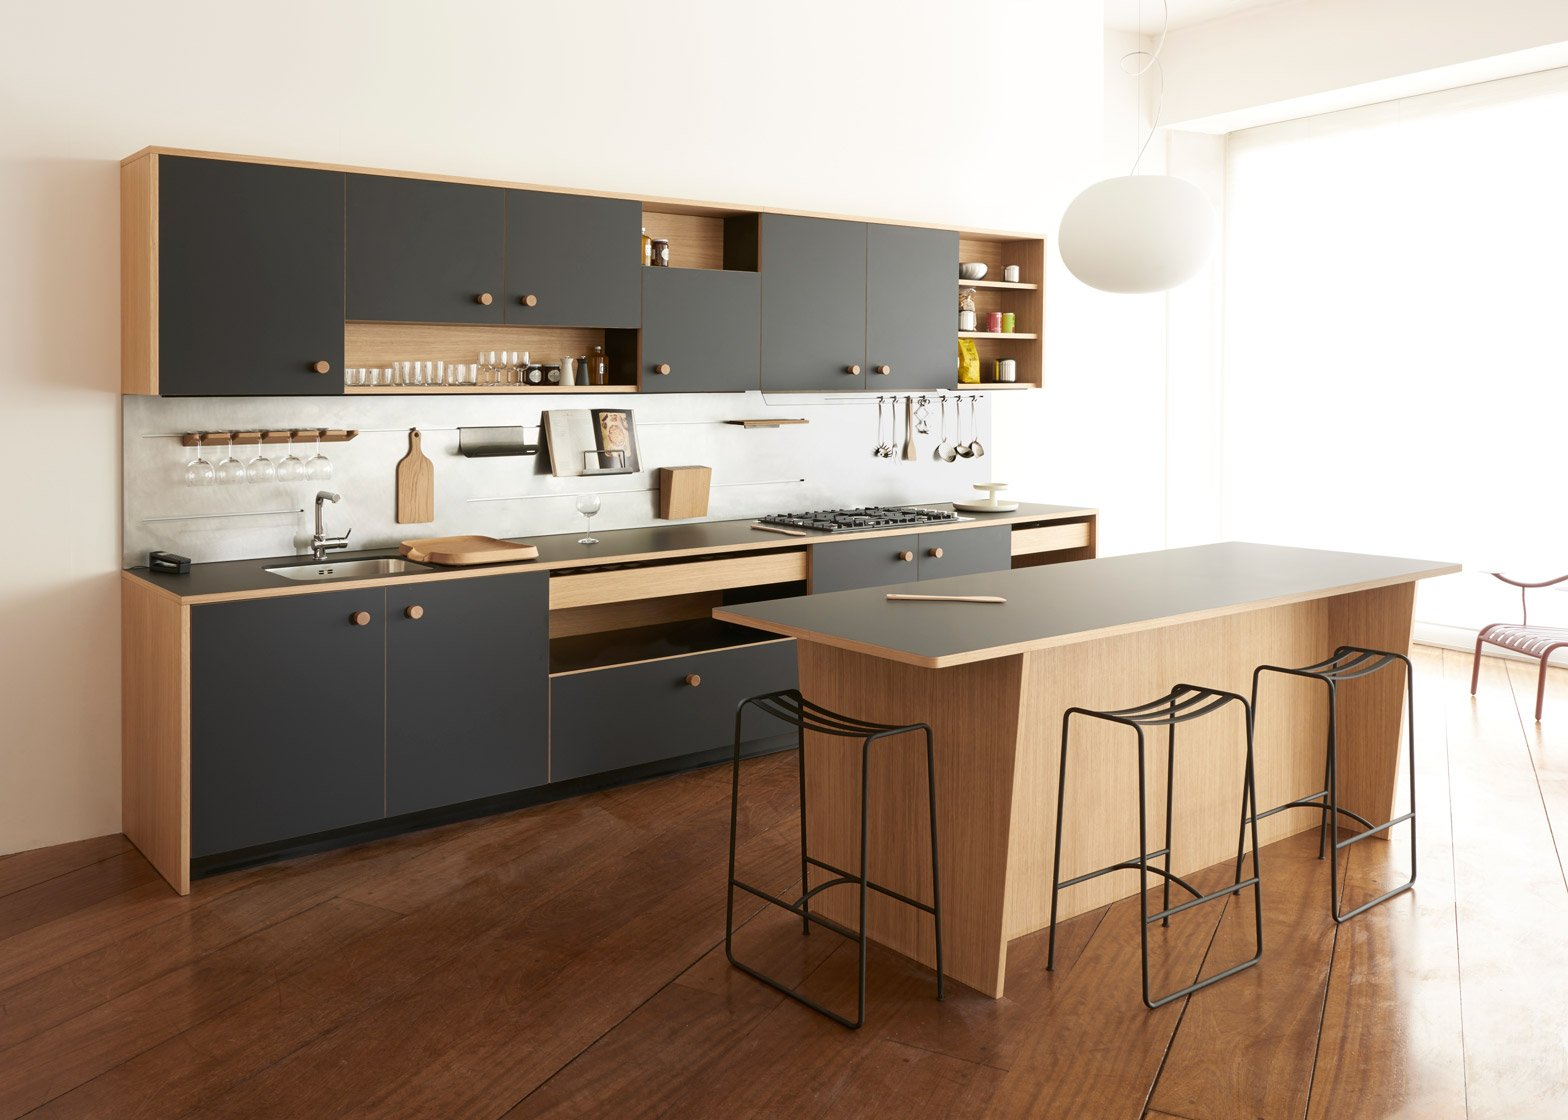 10 Of 13; Lepic Kitchen By Jasper Morrison